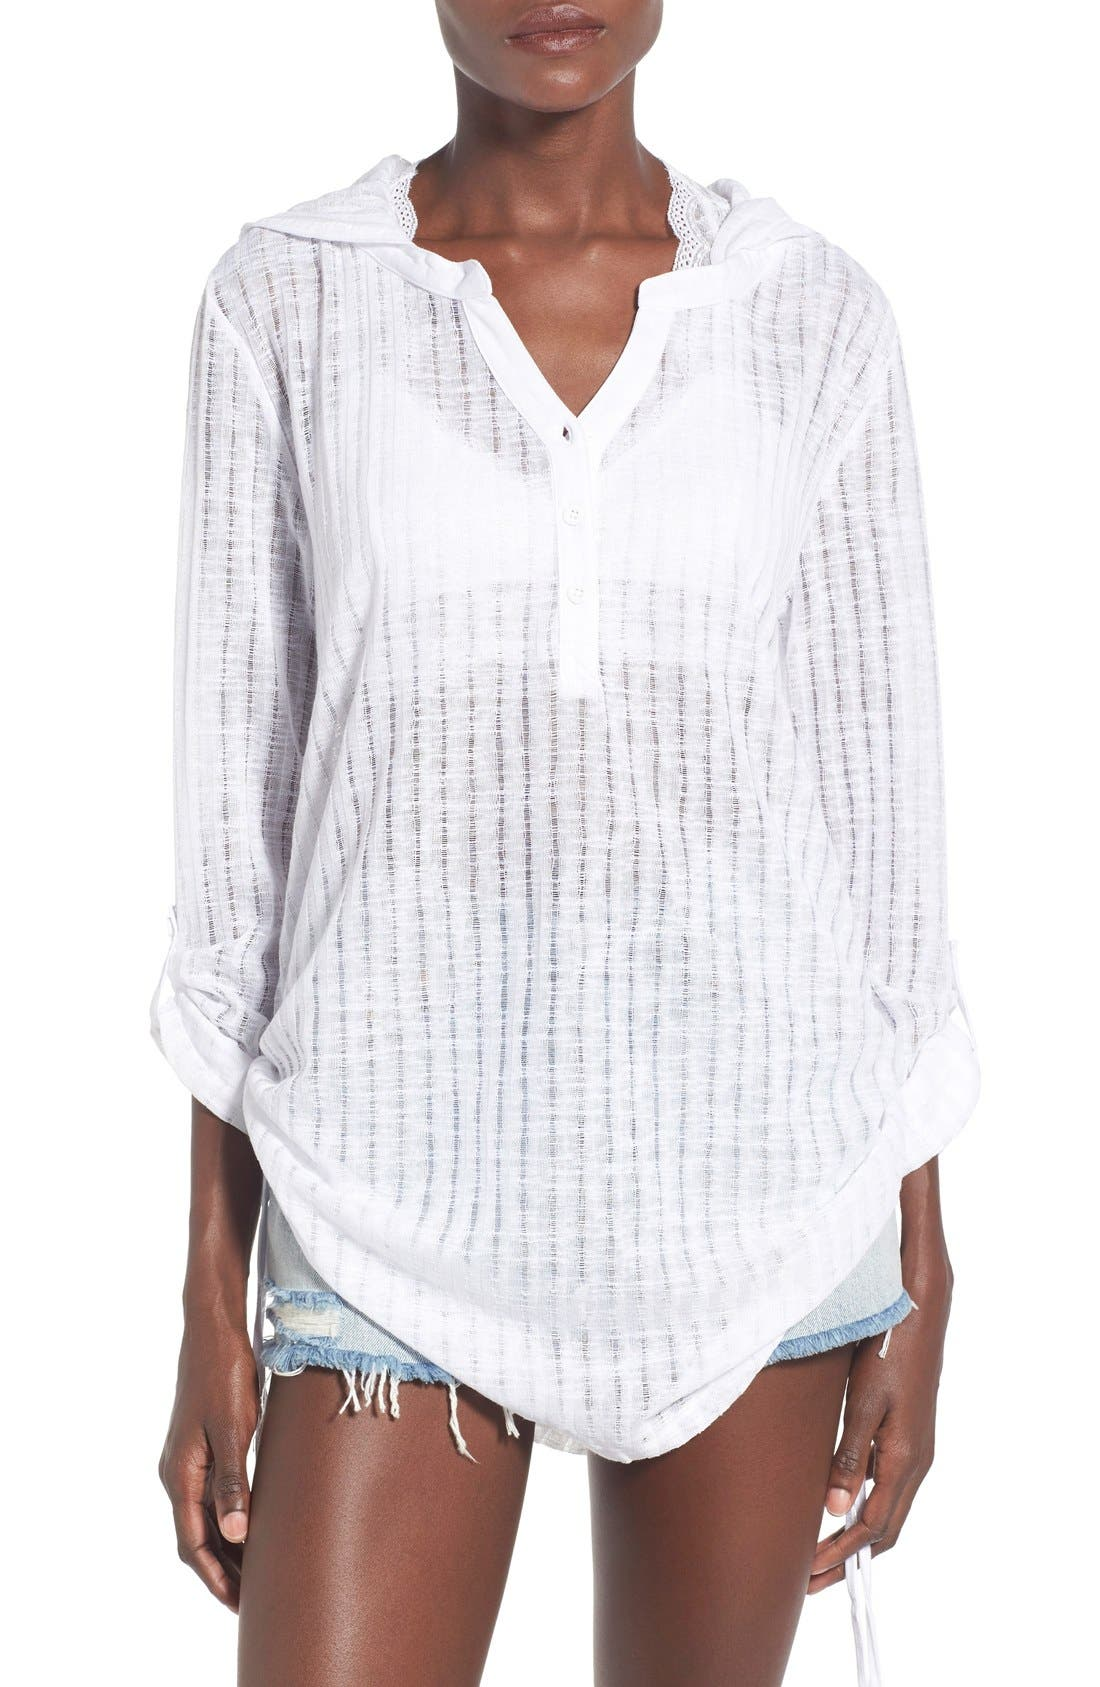 Lovechild Hooded Cover-Up Top,                         Main,                         color, White